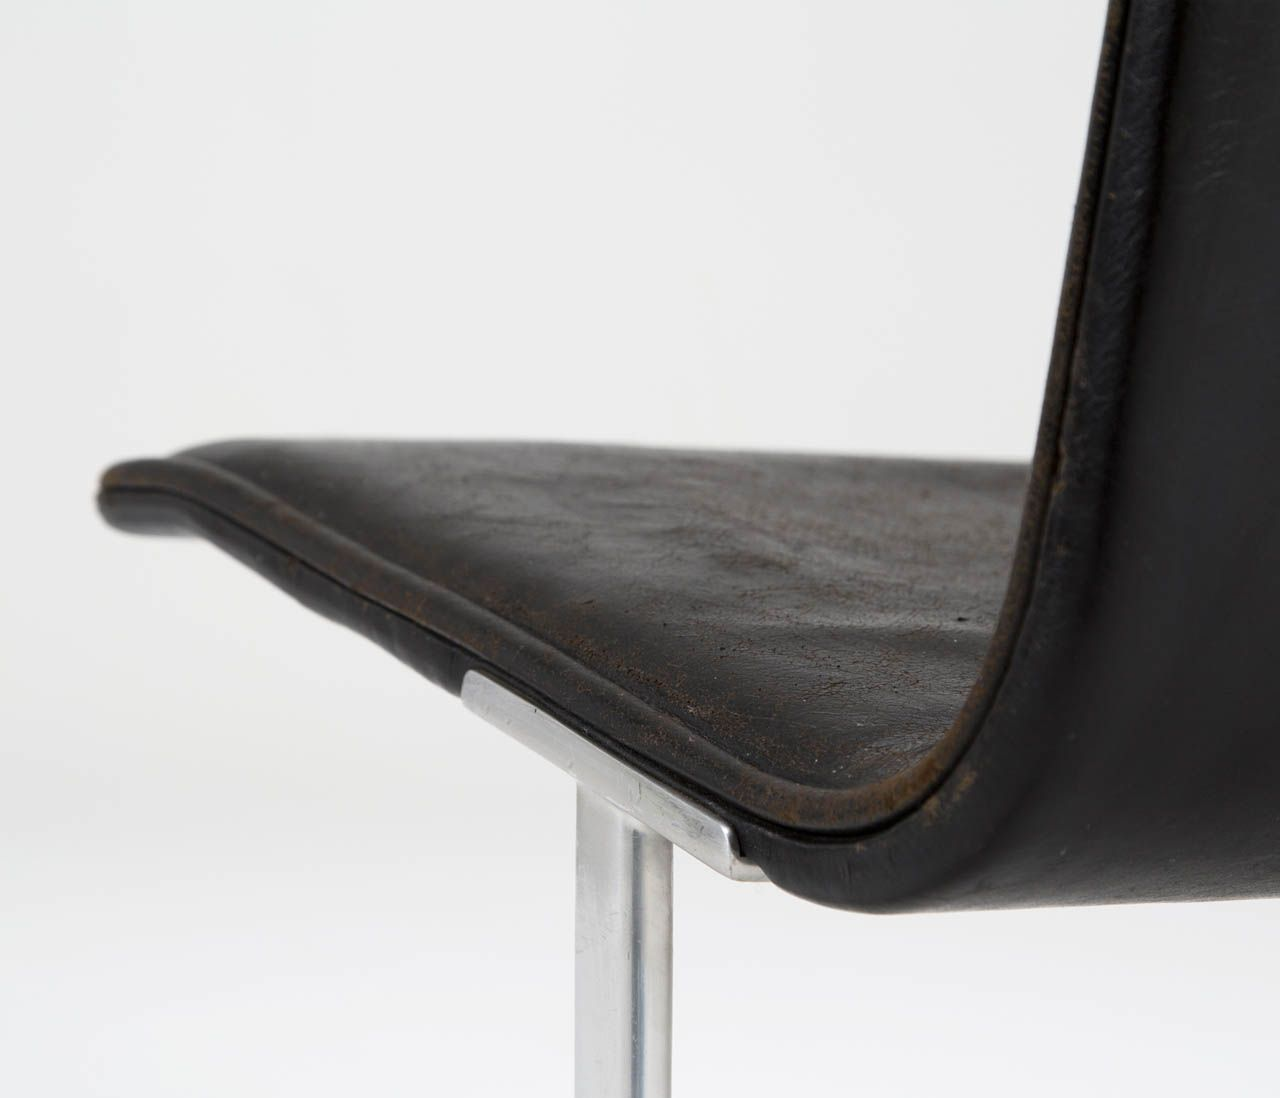 602 \'Easy Chair\' by Dieter Rams in Original Black Leather Upholstery ...